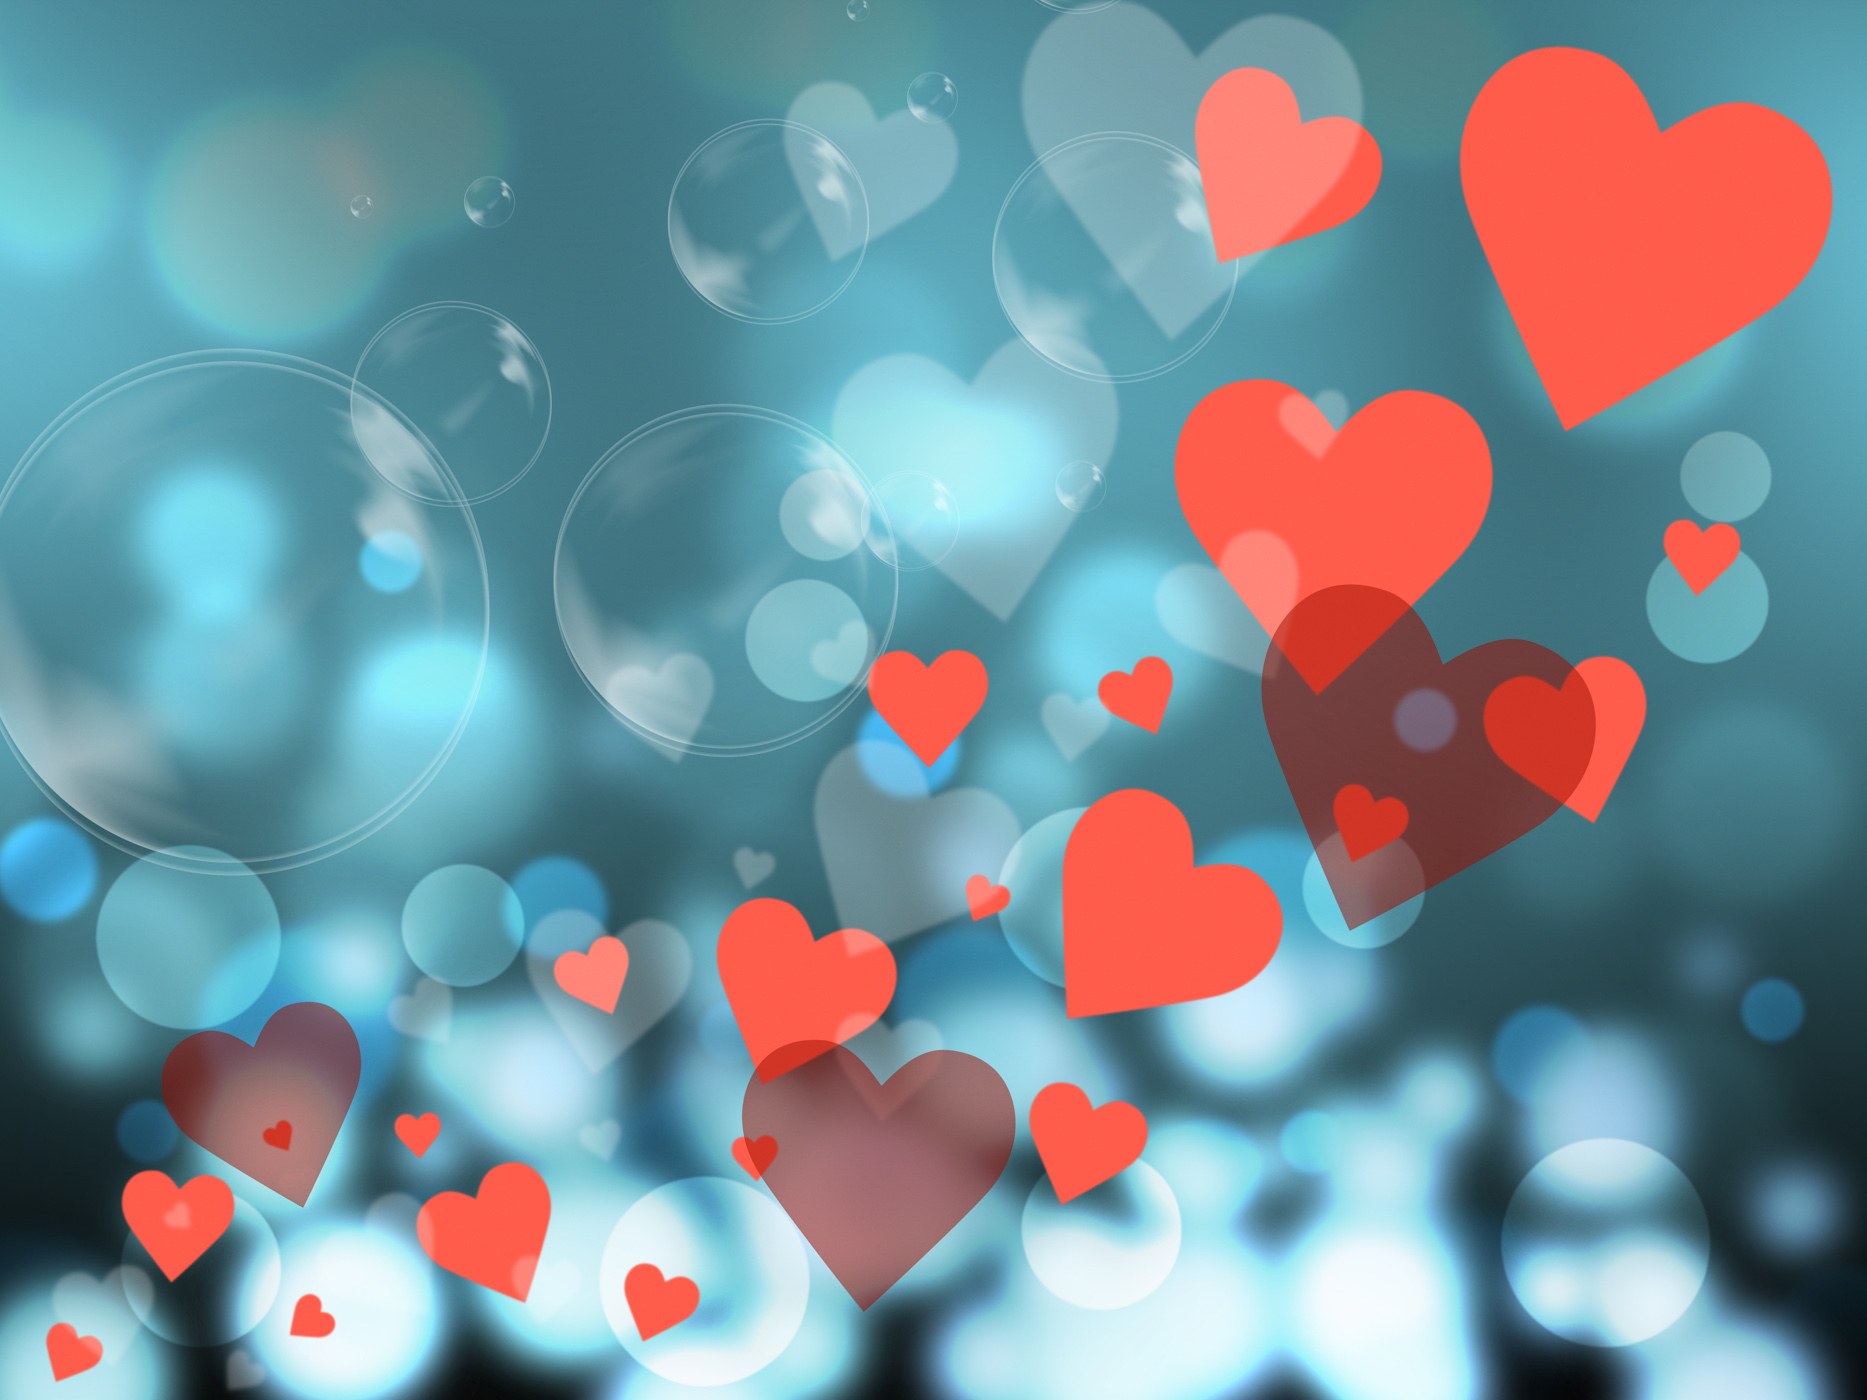 Hearts Background Represents Valentines Day And Backdrop, Abstract, Backdrop, Backgrounds, Design, HQ Photo